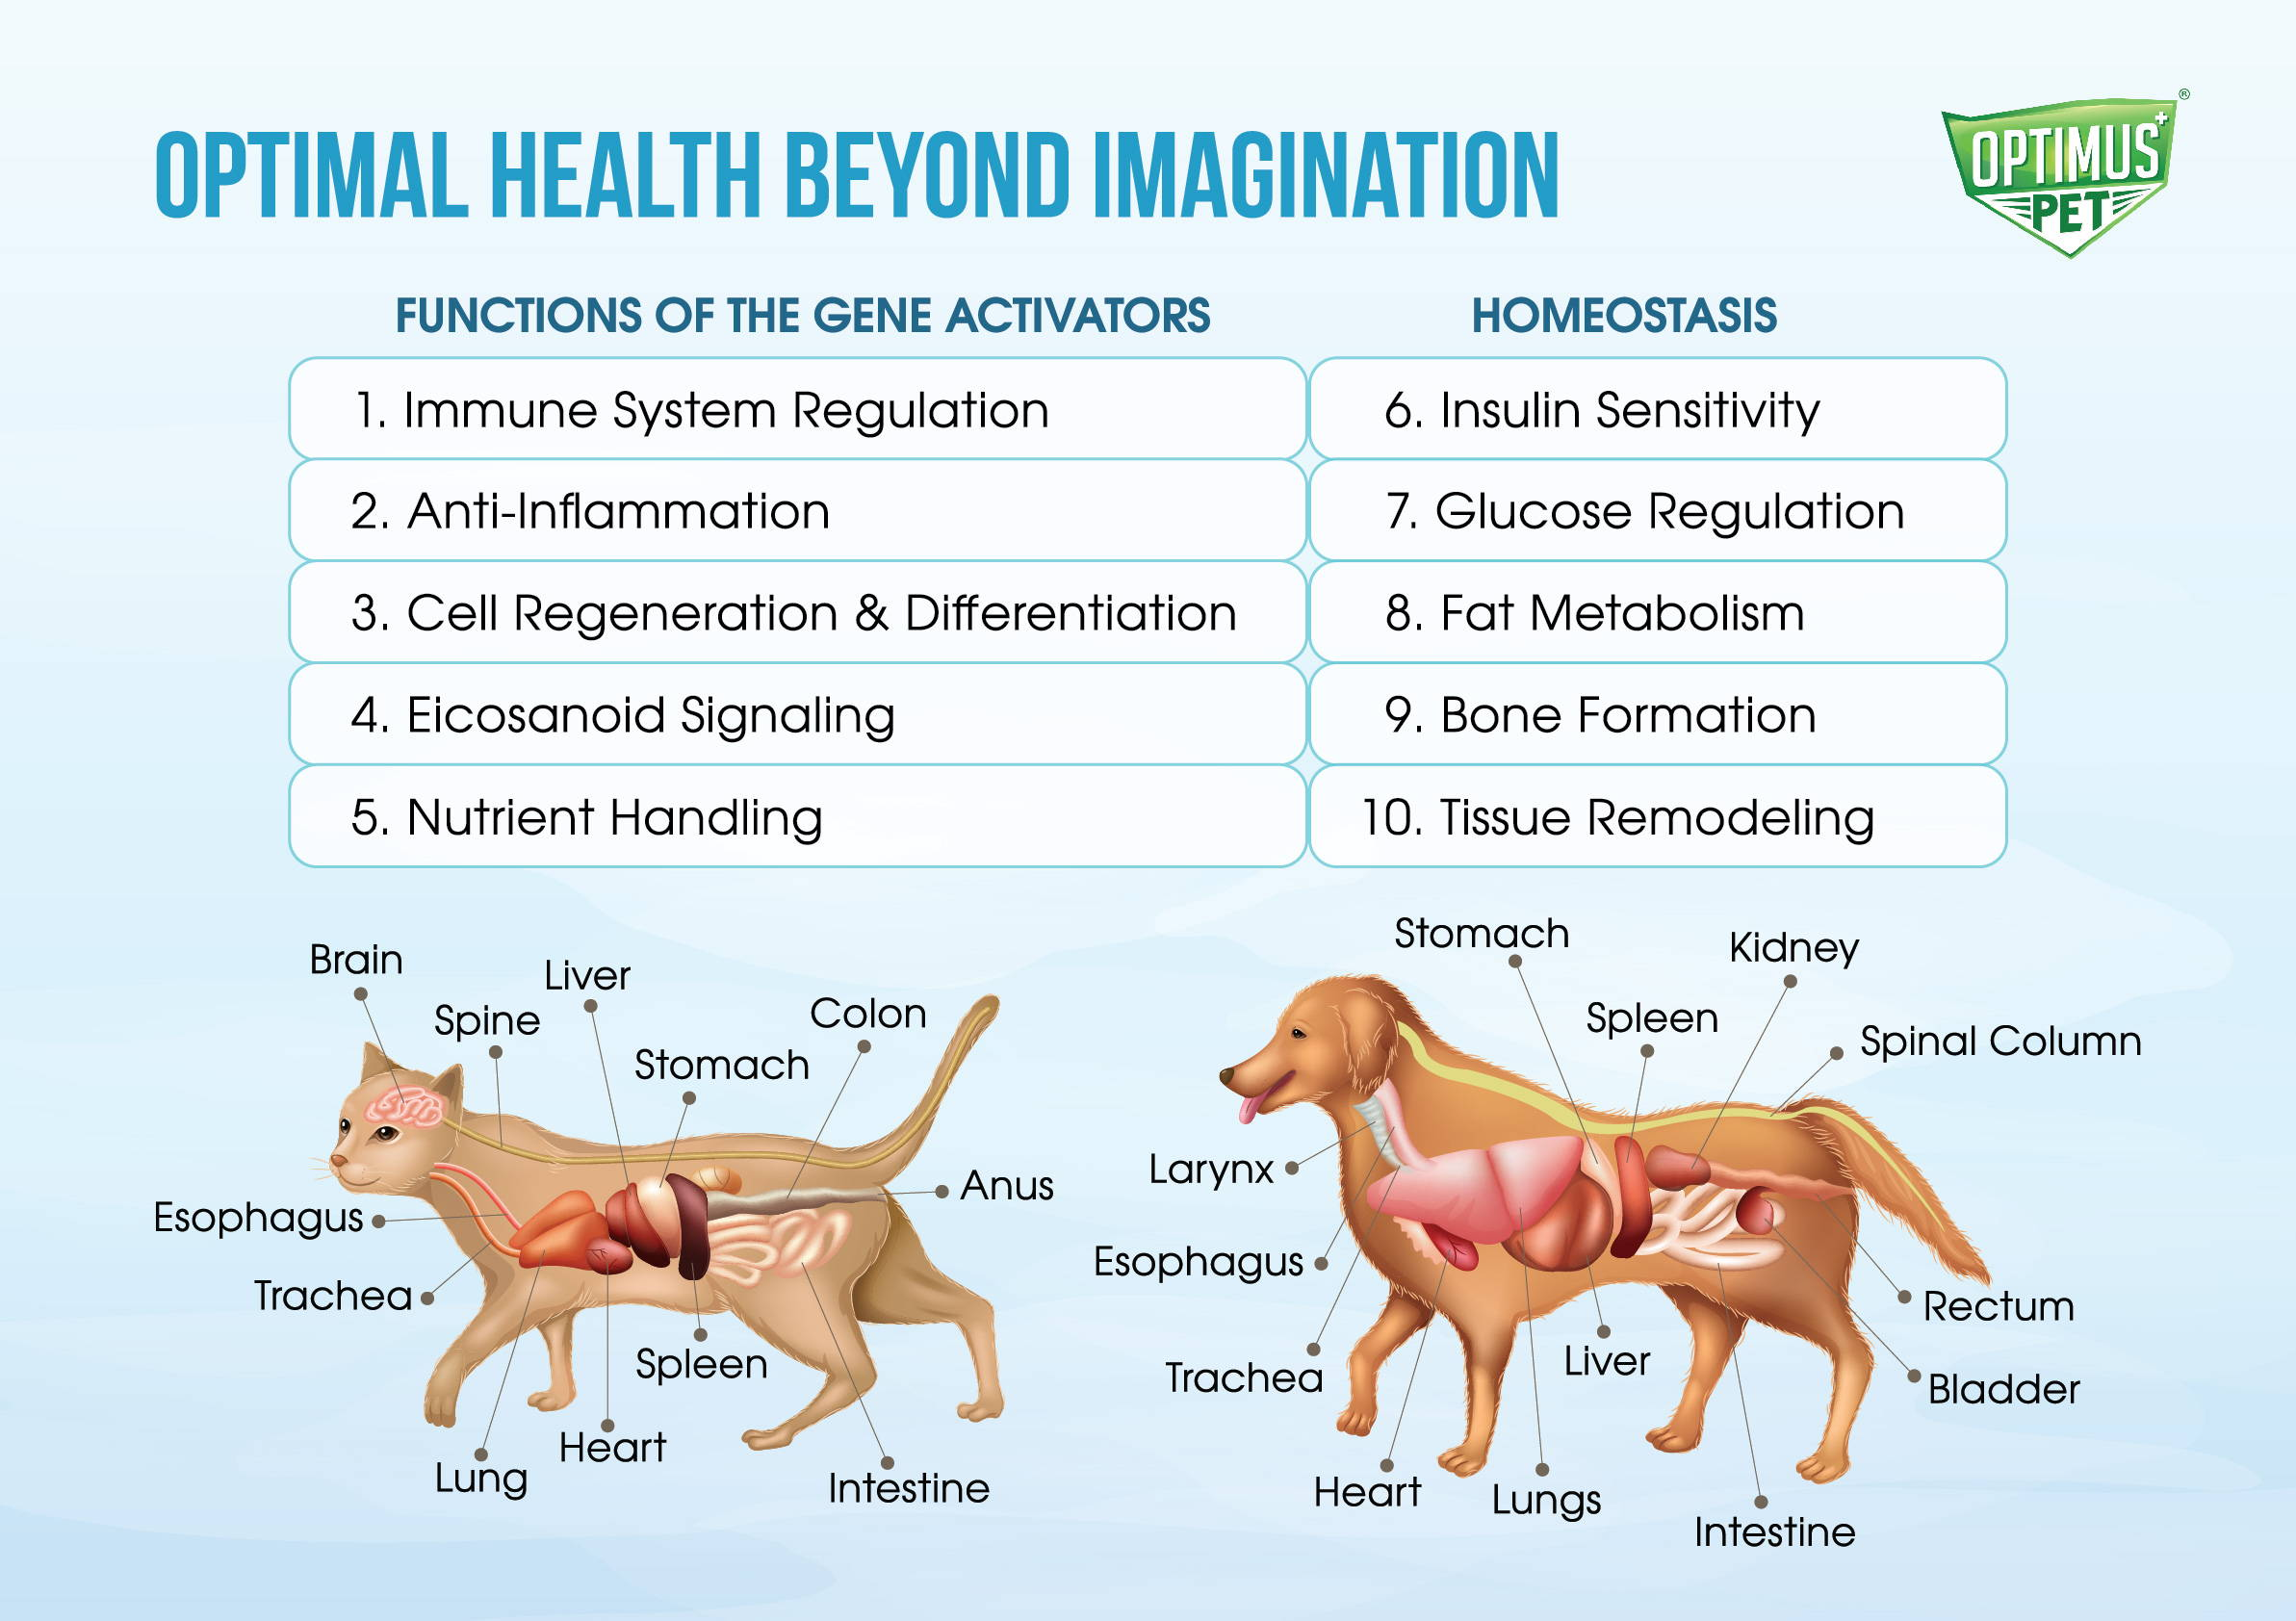 optimus pet gene activators and homeostasis functions